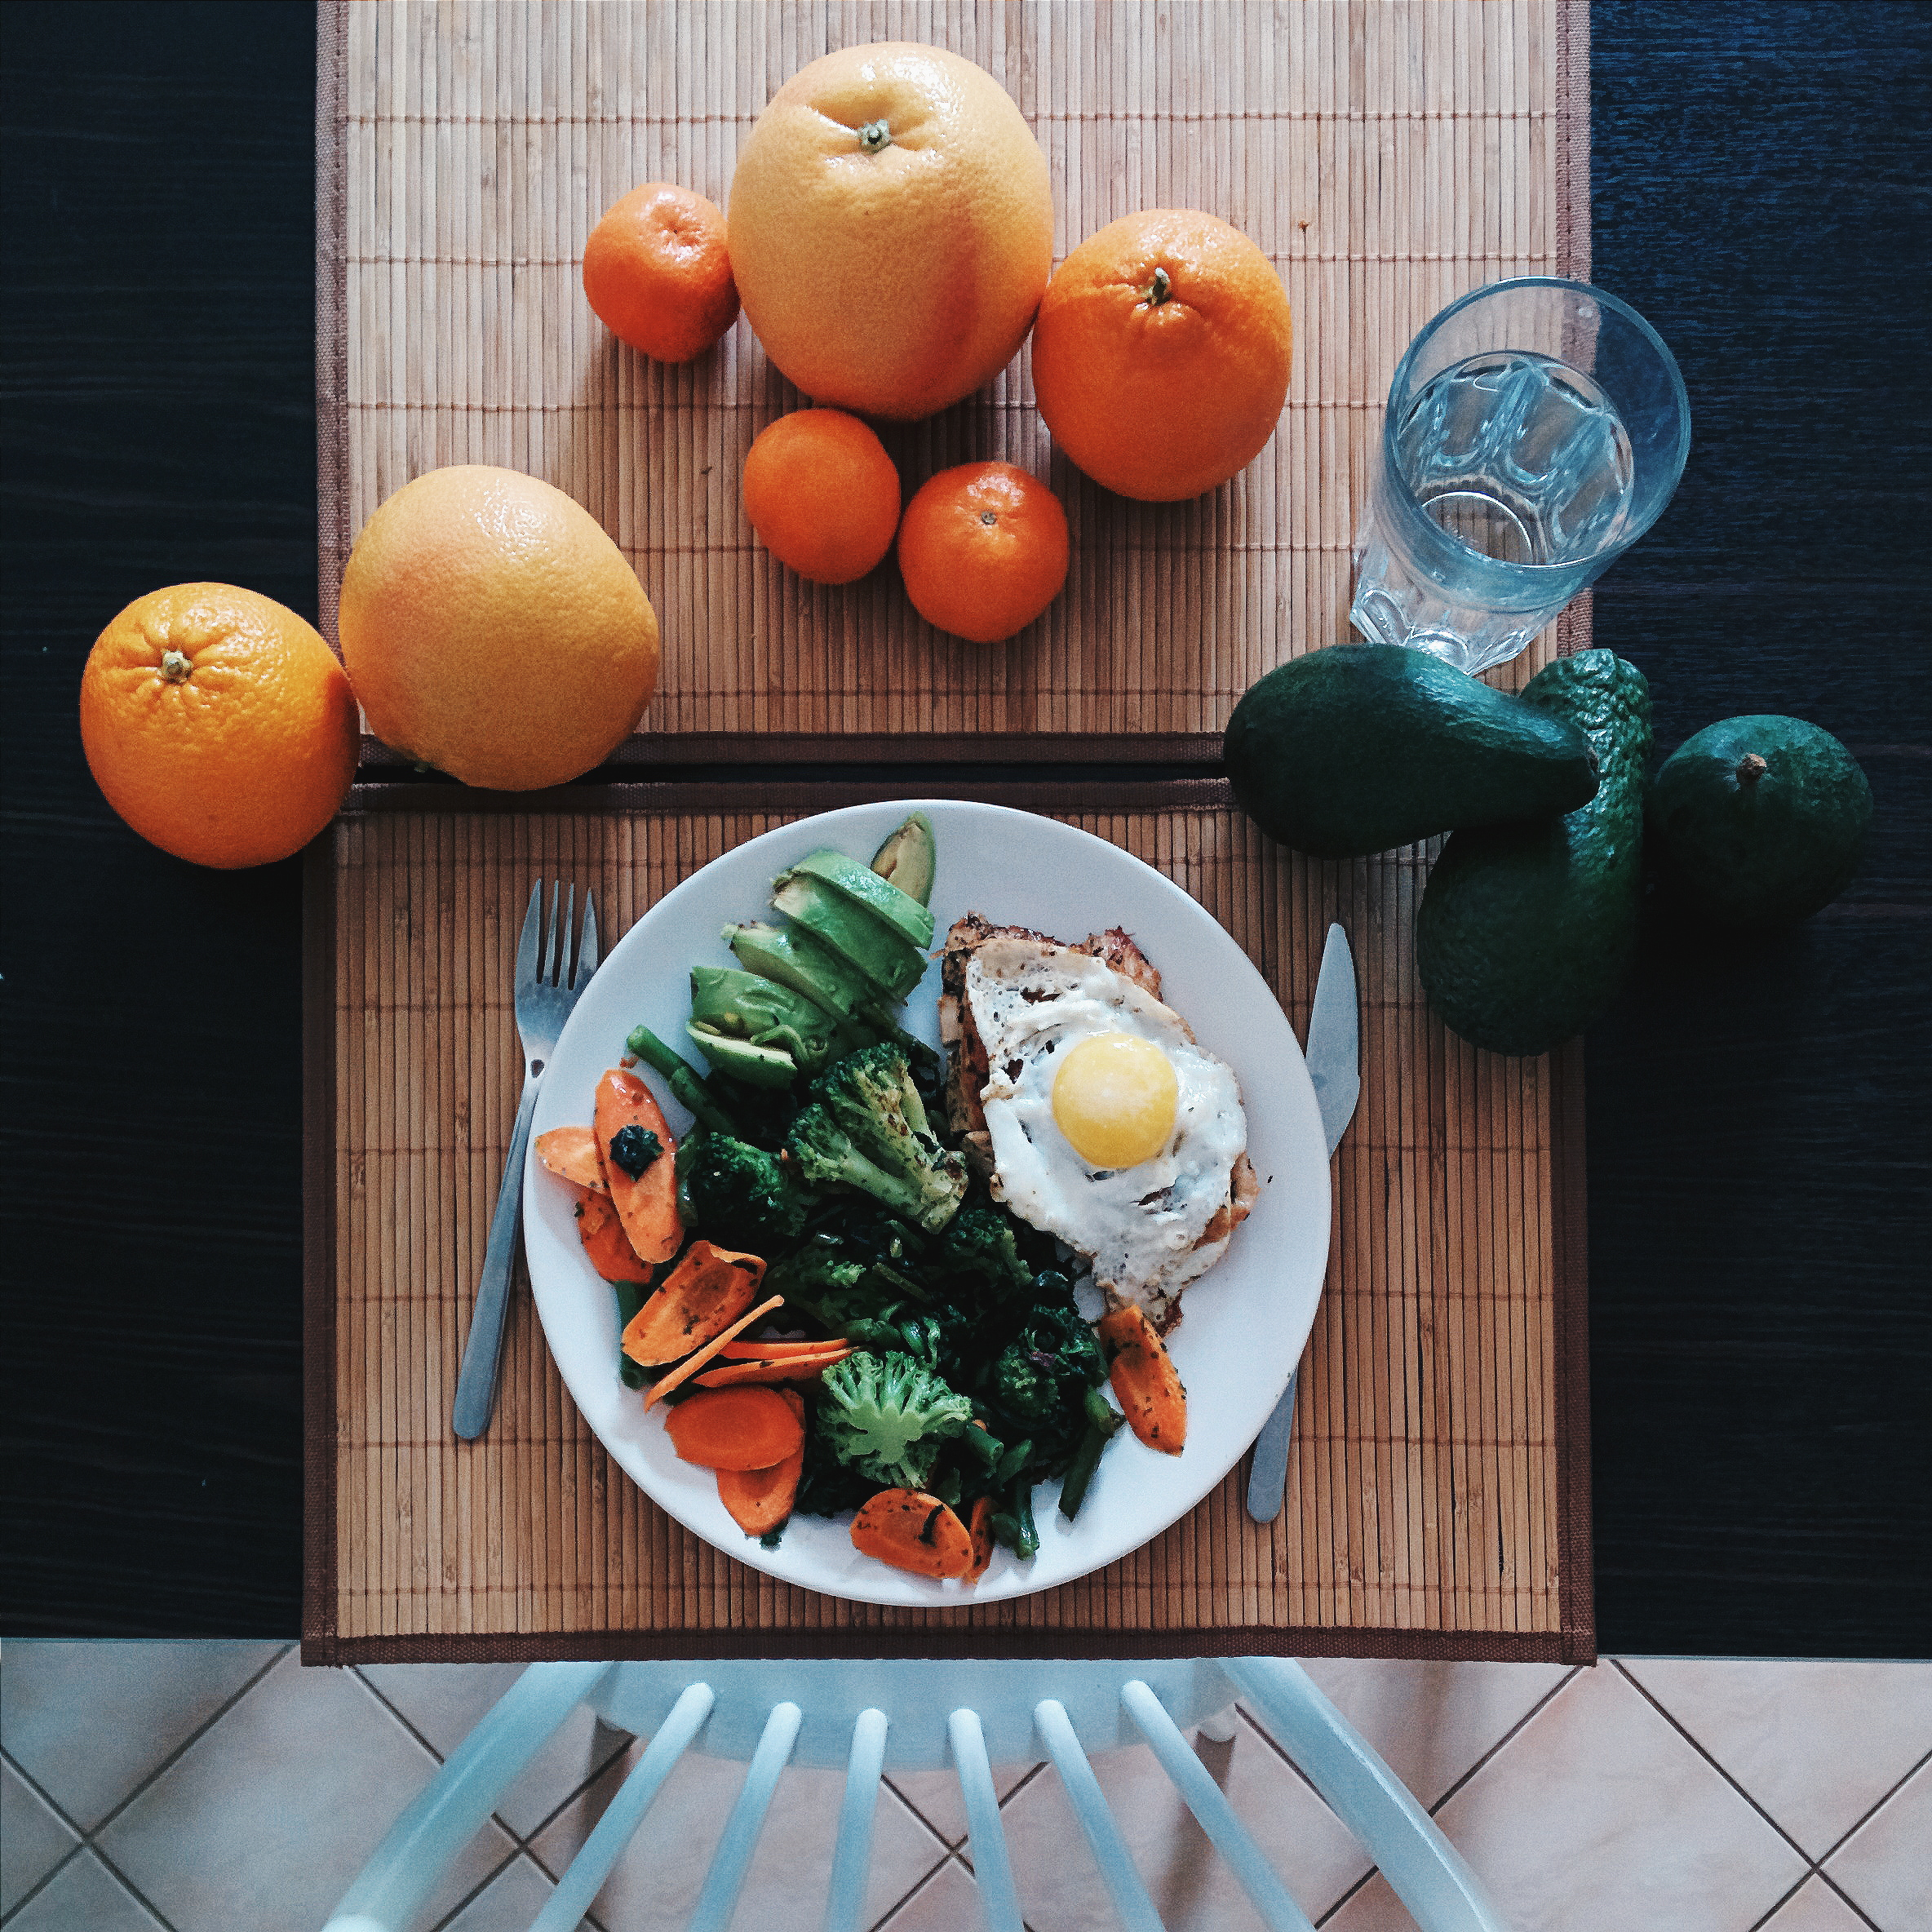 Chicken steak with egg, spinach, broccoli, avocado and carrot